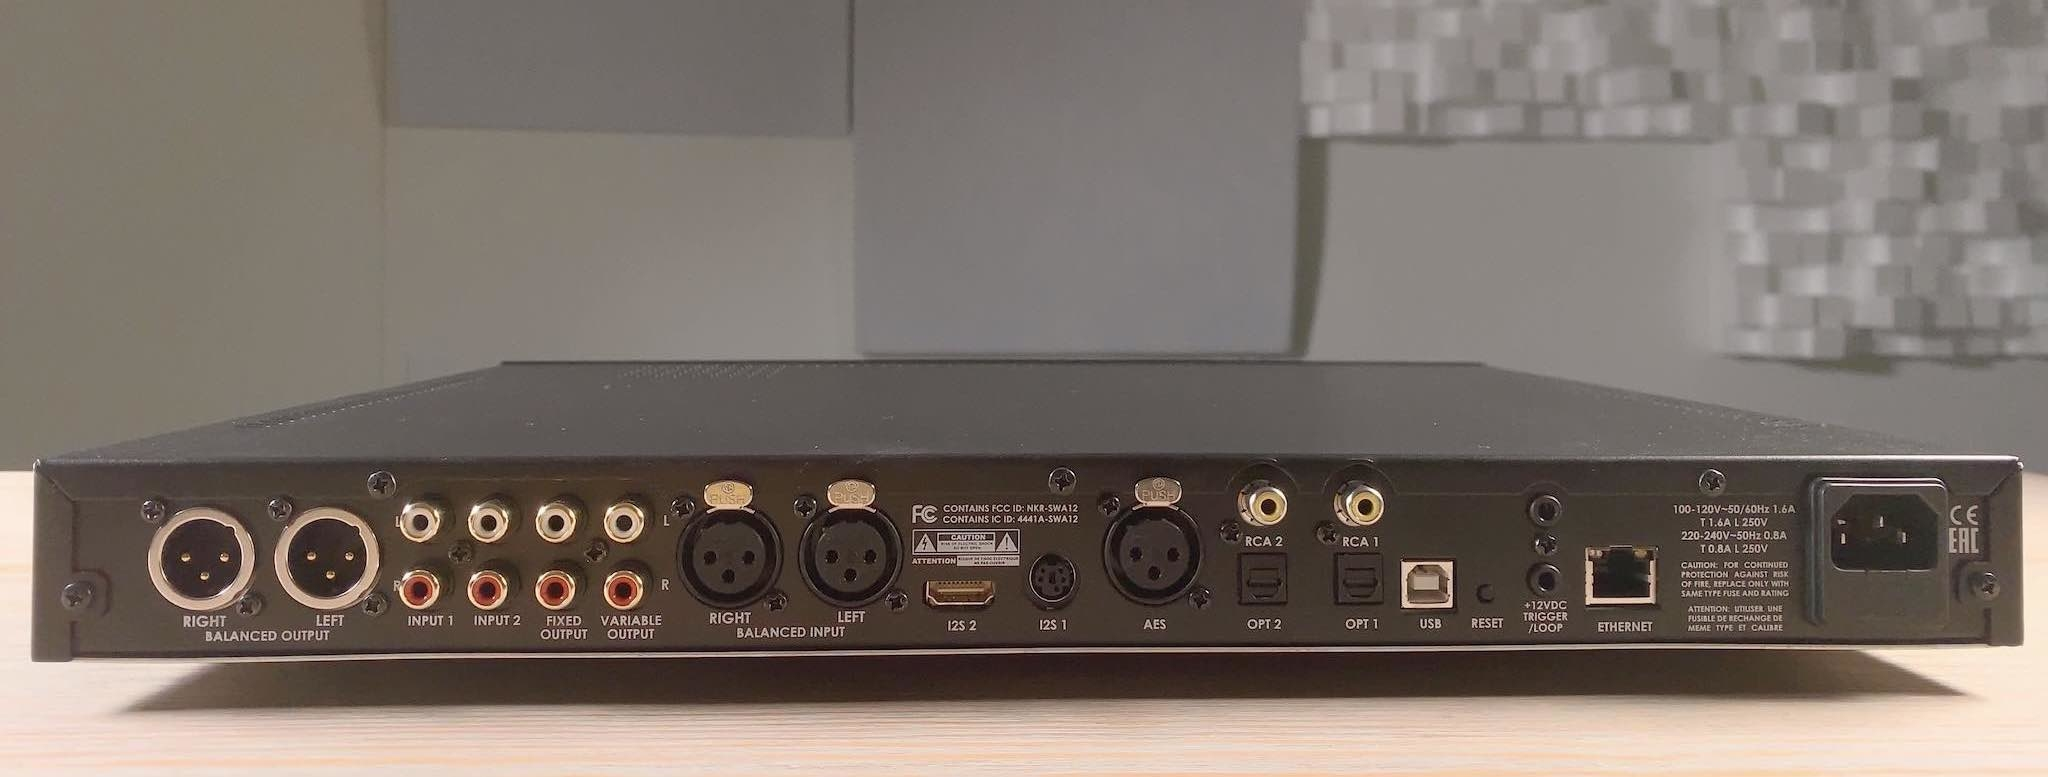 Audiophile 5: Elac DDP-2 DAC / Preamp / Streamer In 5 Minutes